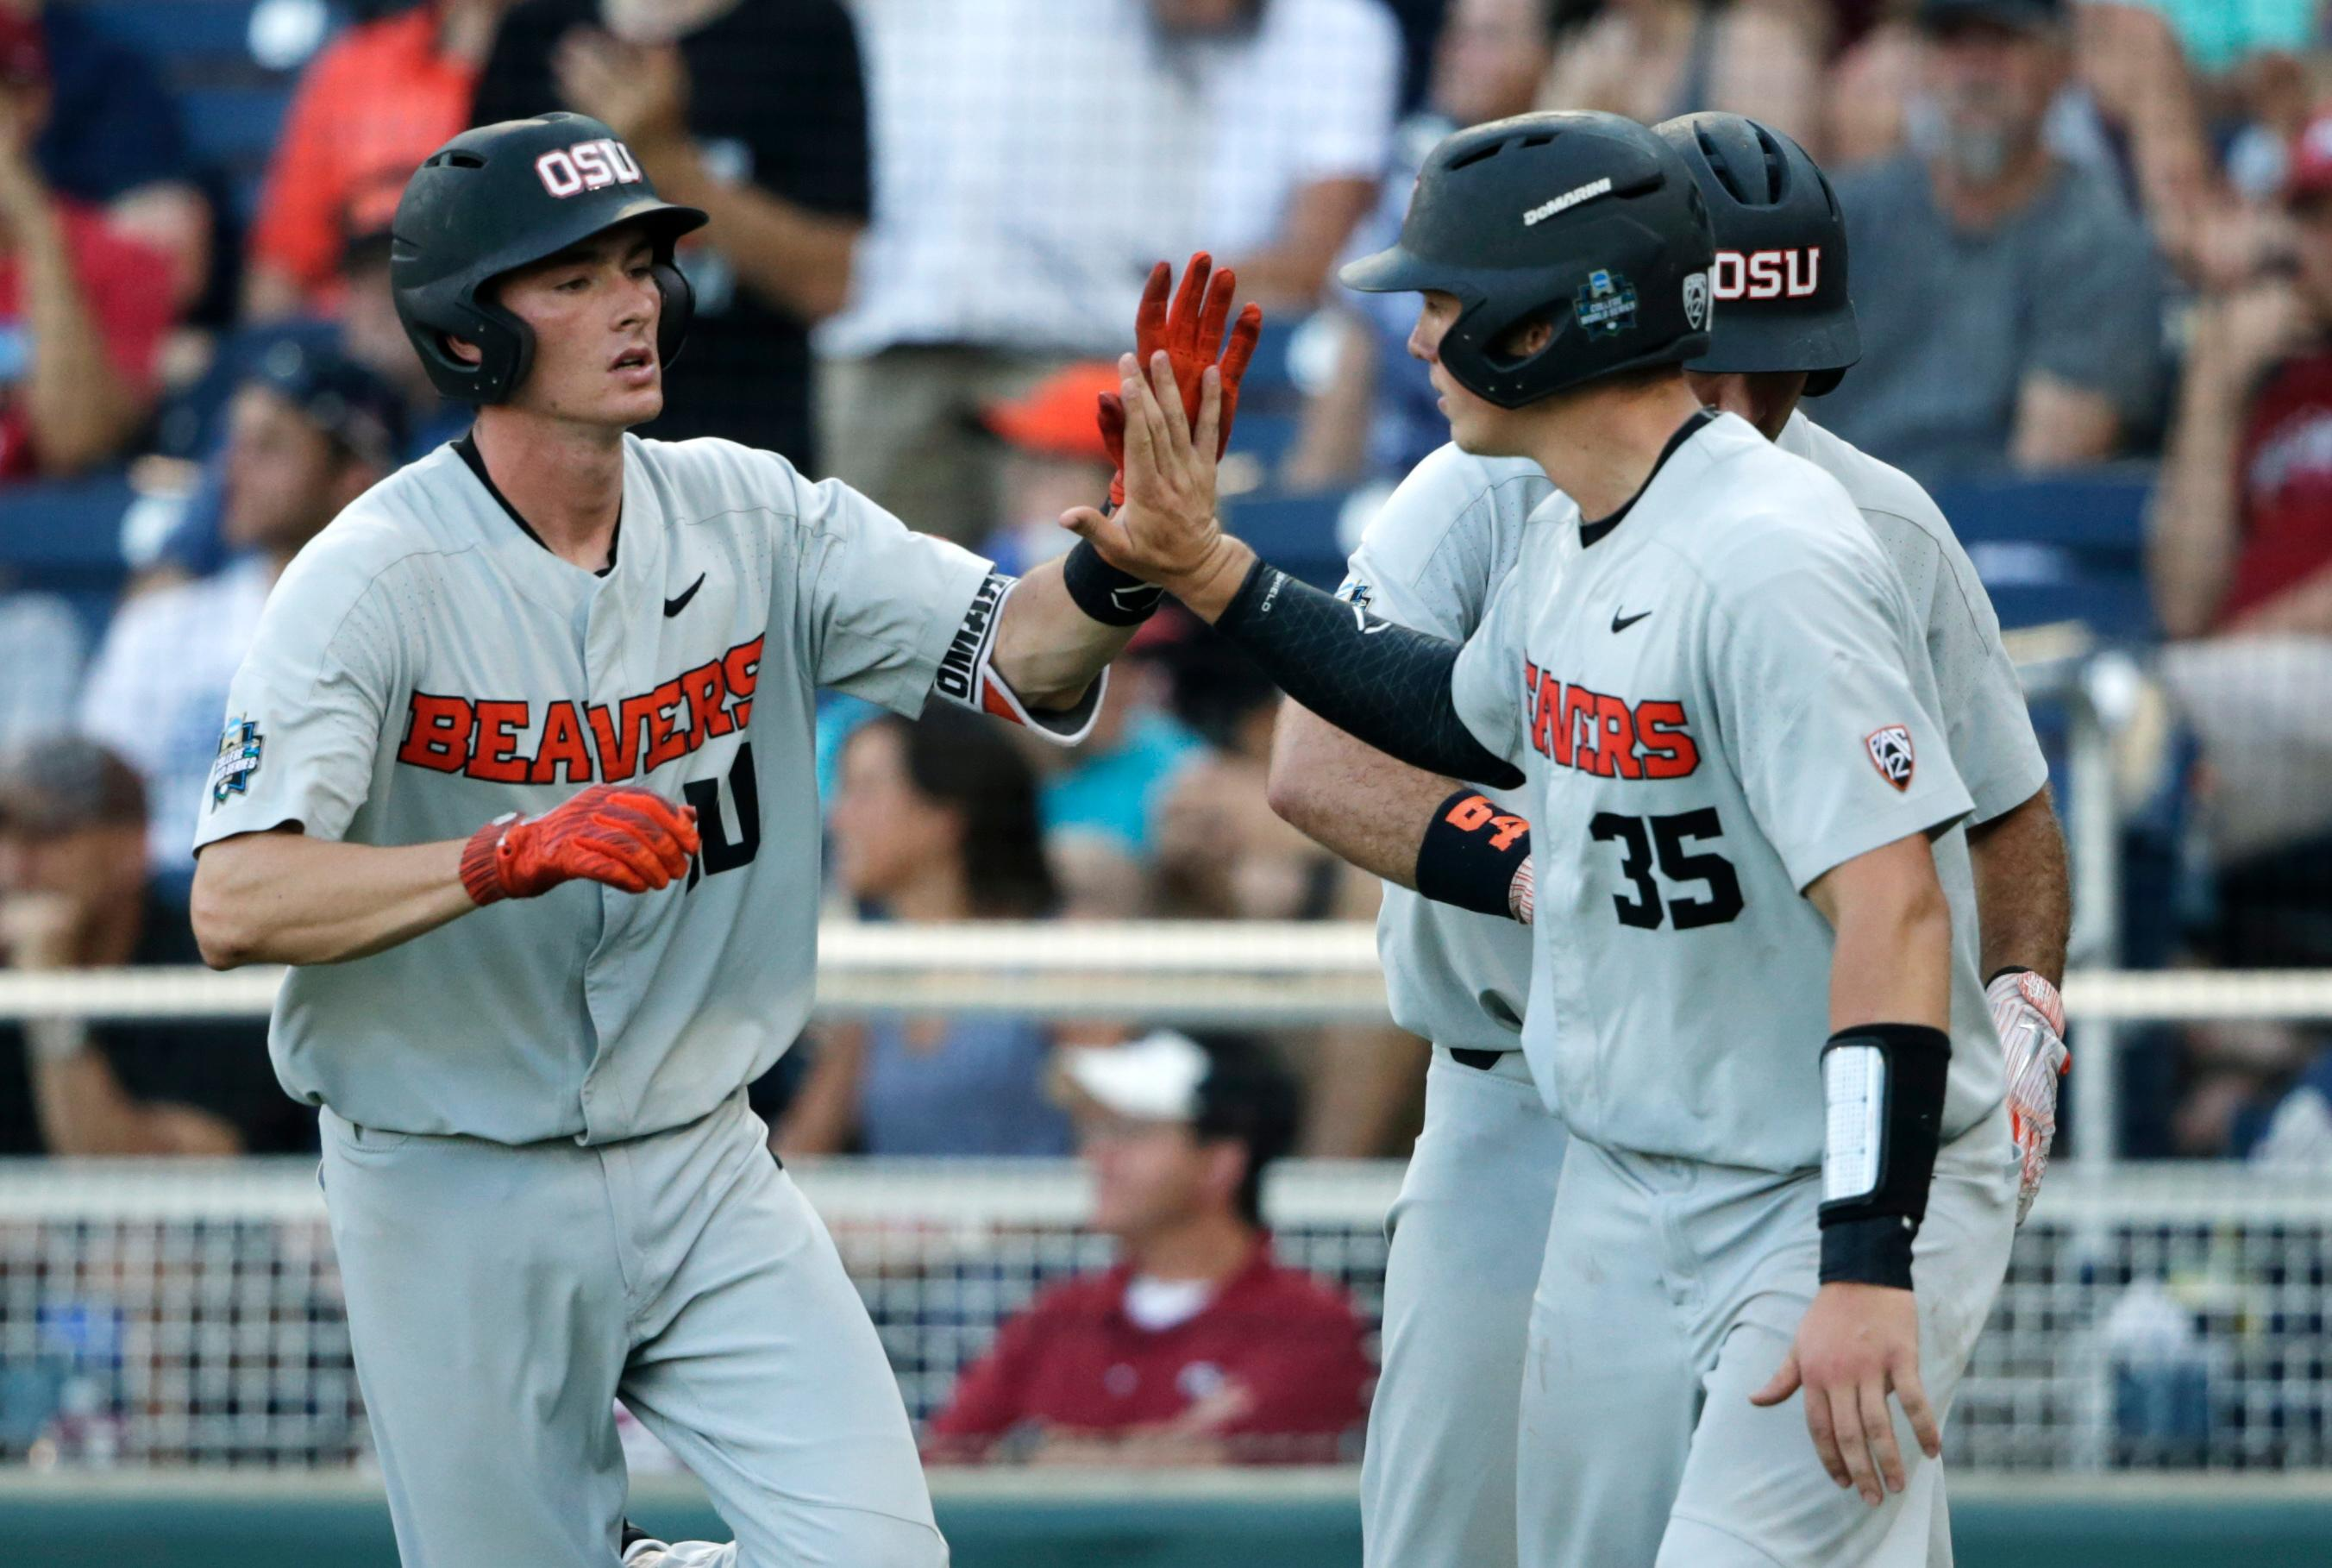 Oregon State third baseman Michael Gretler, left, greets Adley Rutschman (35) after Rutschman scored on a sacrifice fly hit by Gretler during the fifth inning against Arkansas in Game 3 of the NCAA College World Series baseball finals, Thursday, June 28, 2018, in Omaha, Neb. (AP Photo/Nati Harnik)